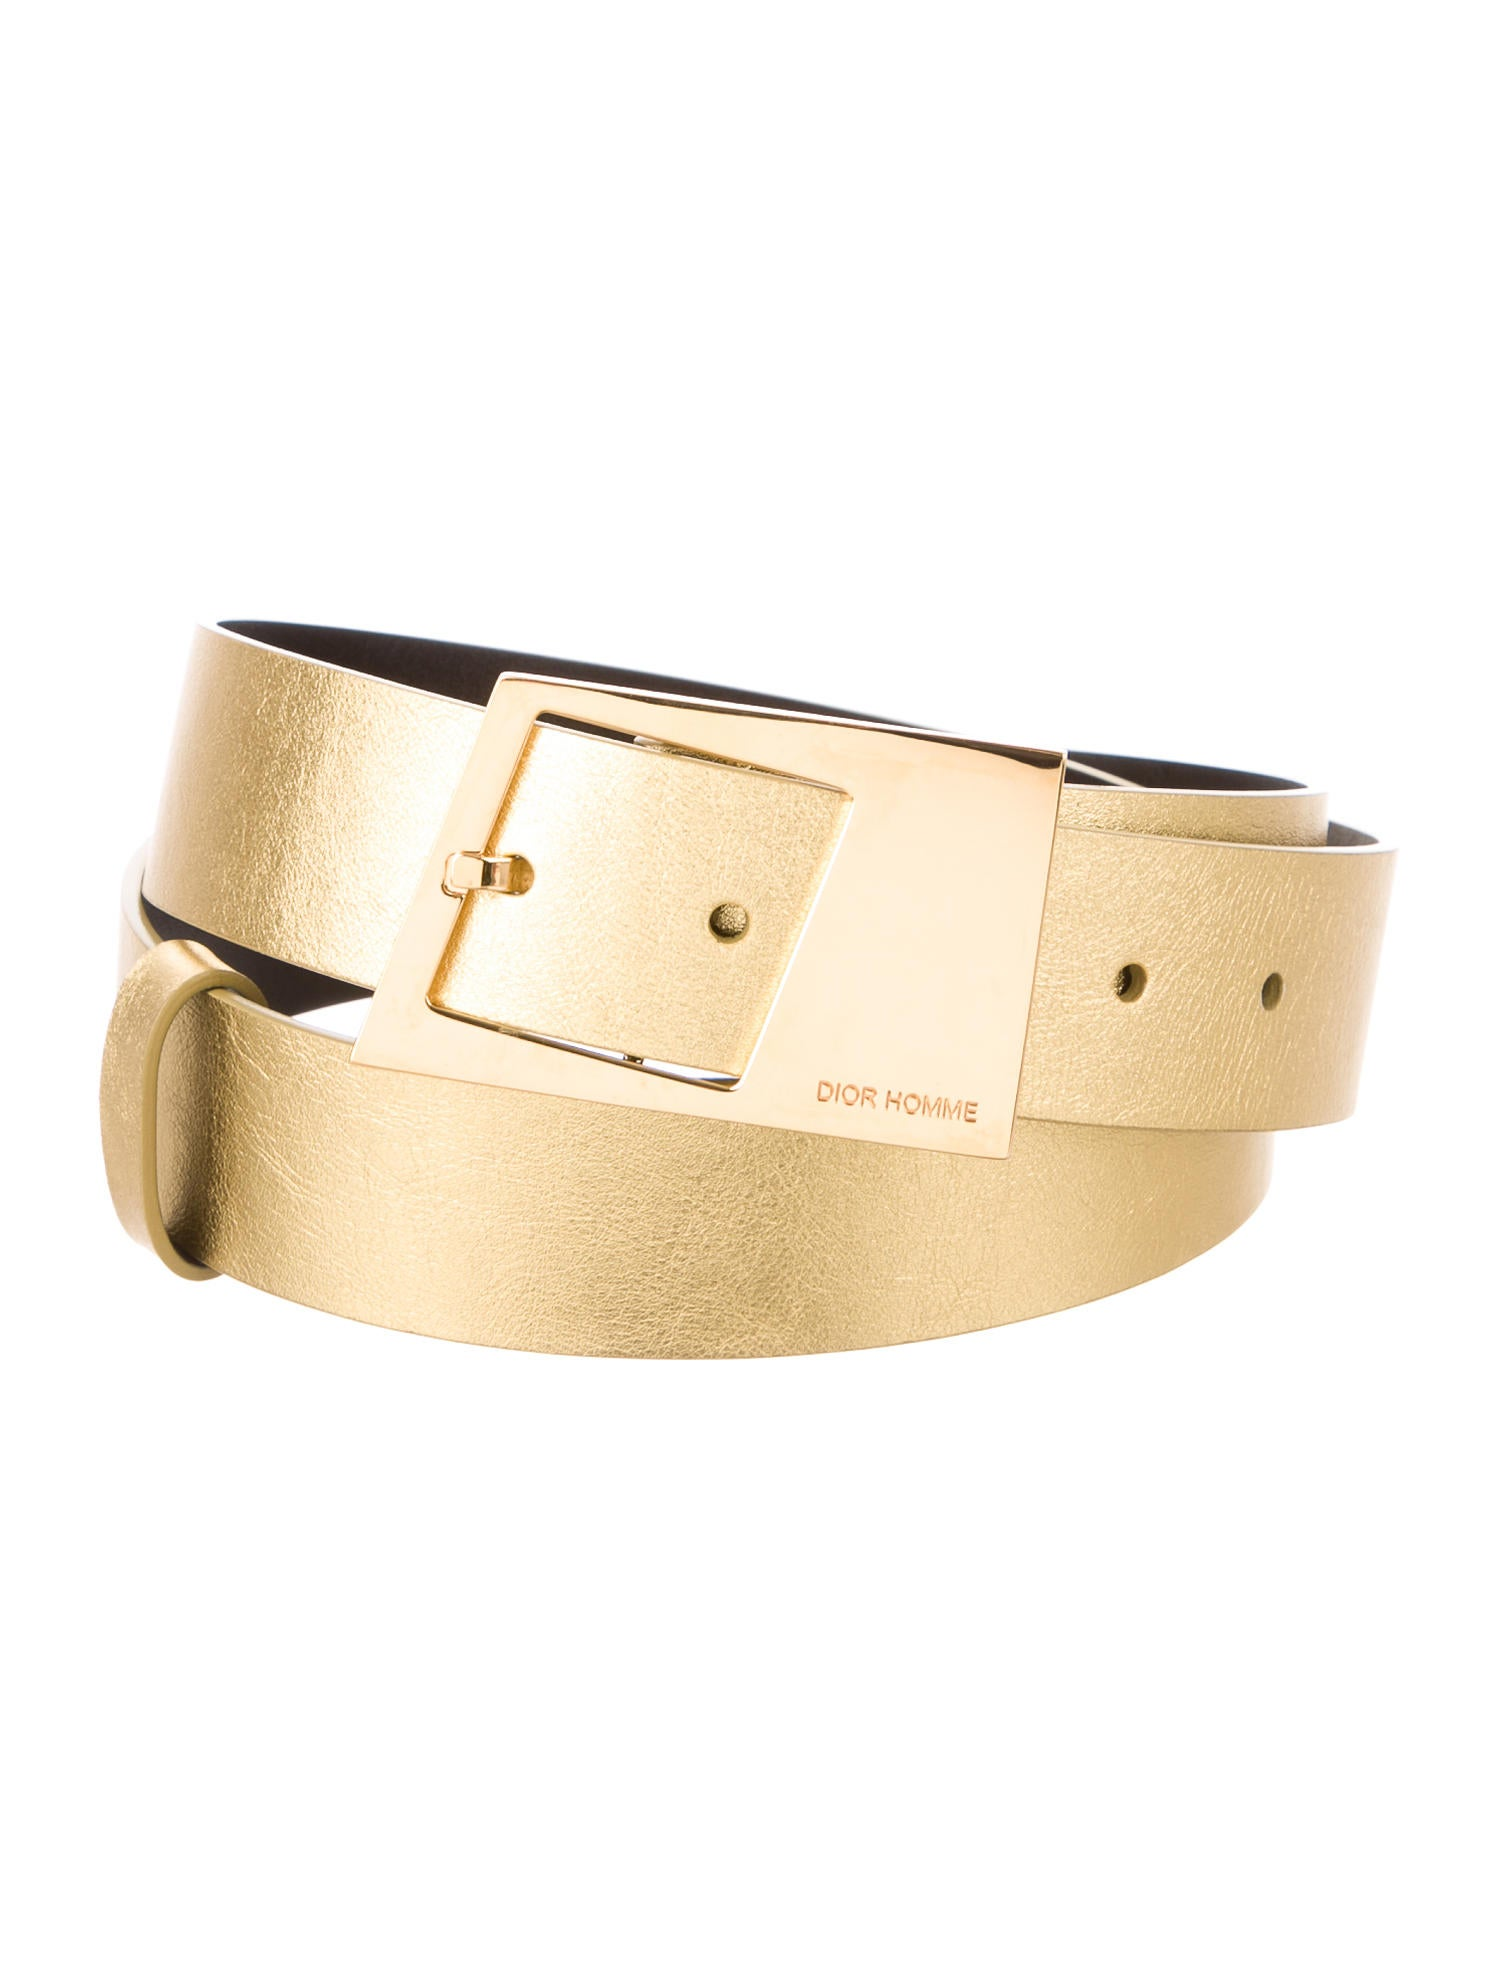 homme metallic leather belt w tags accessories